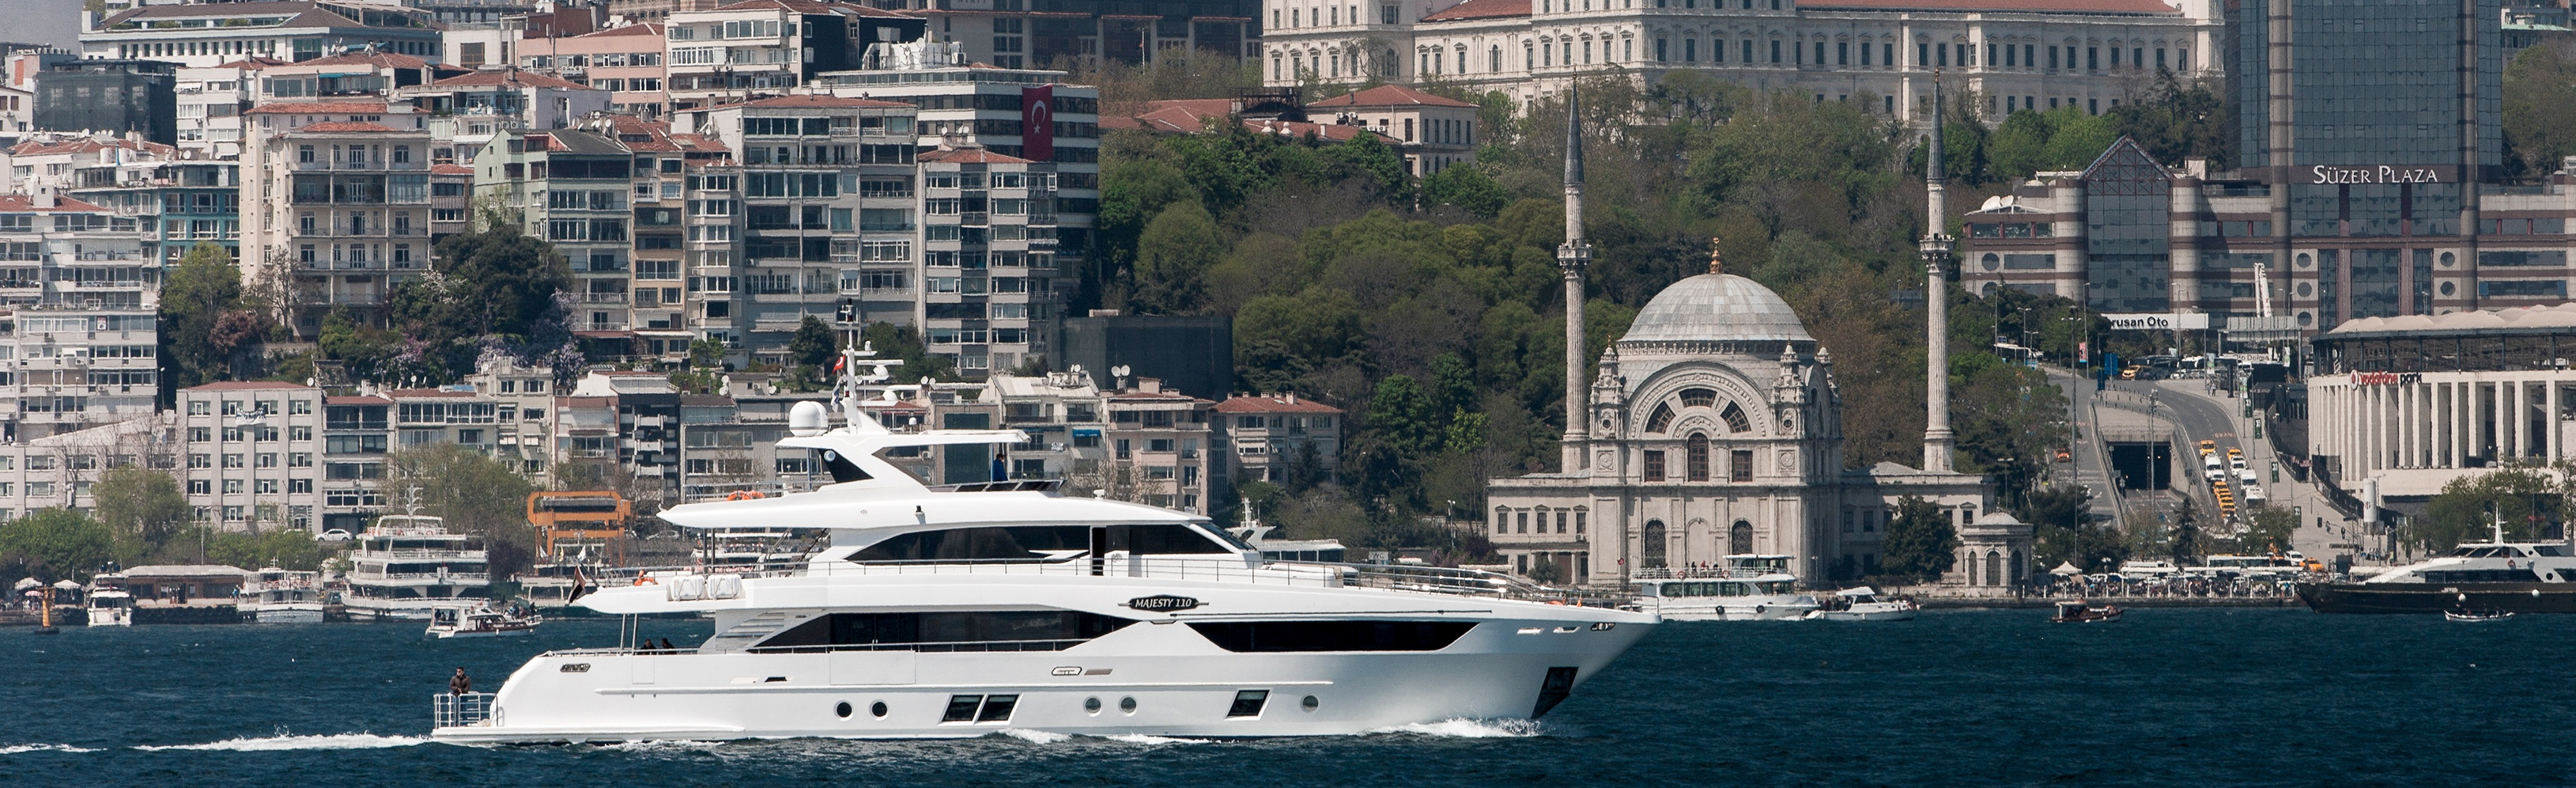 Majesty-110,-Bosphorus